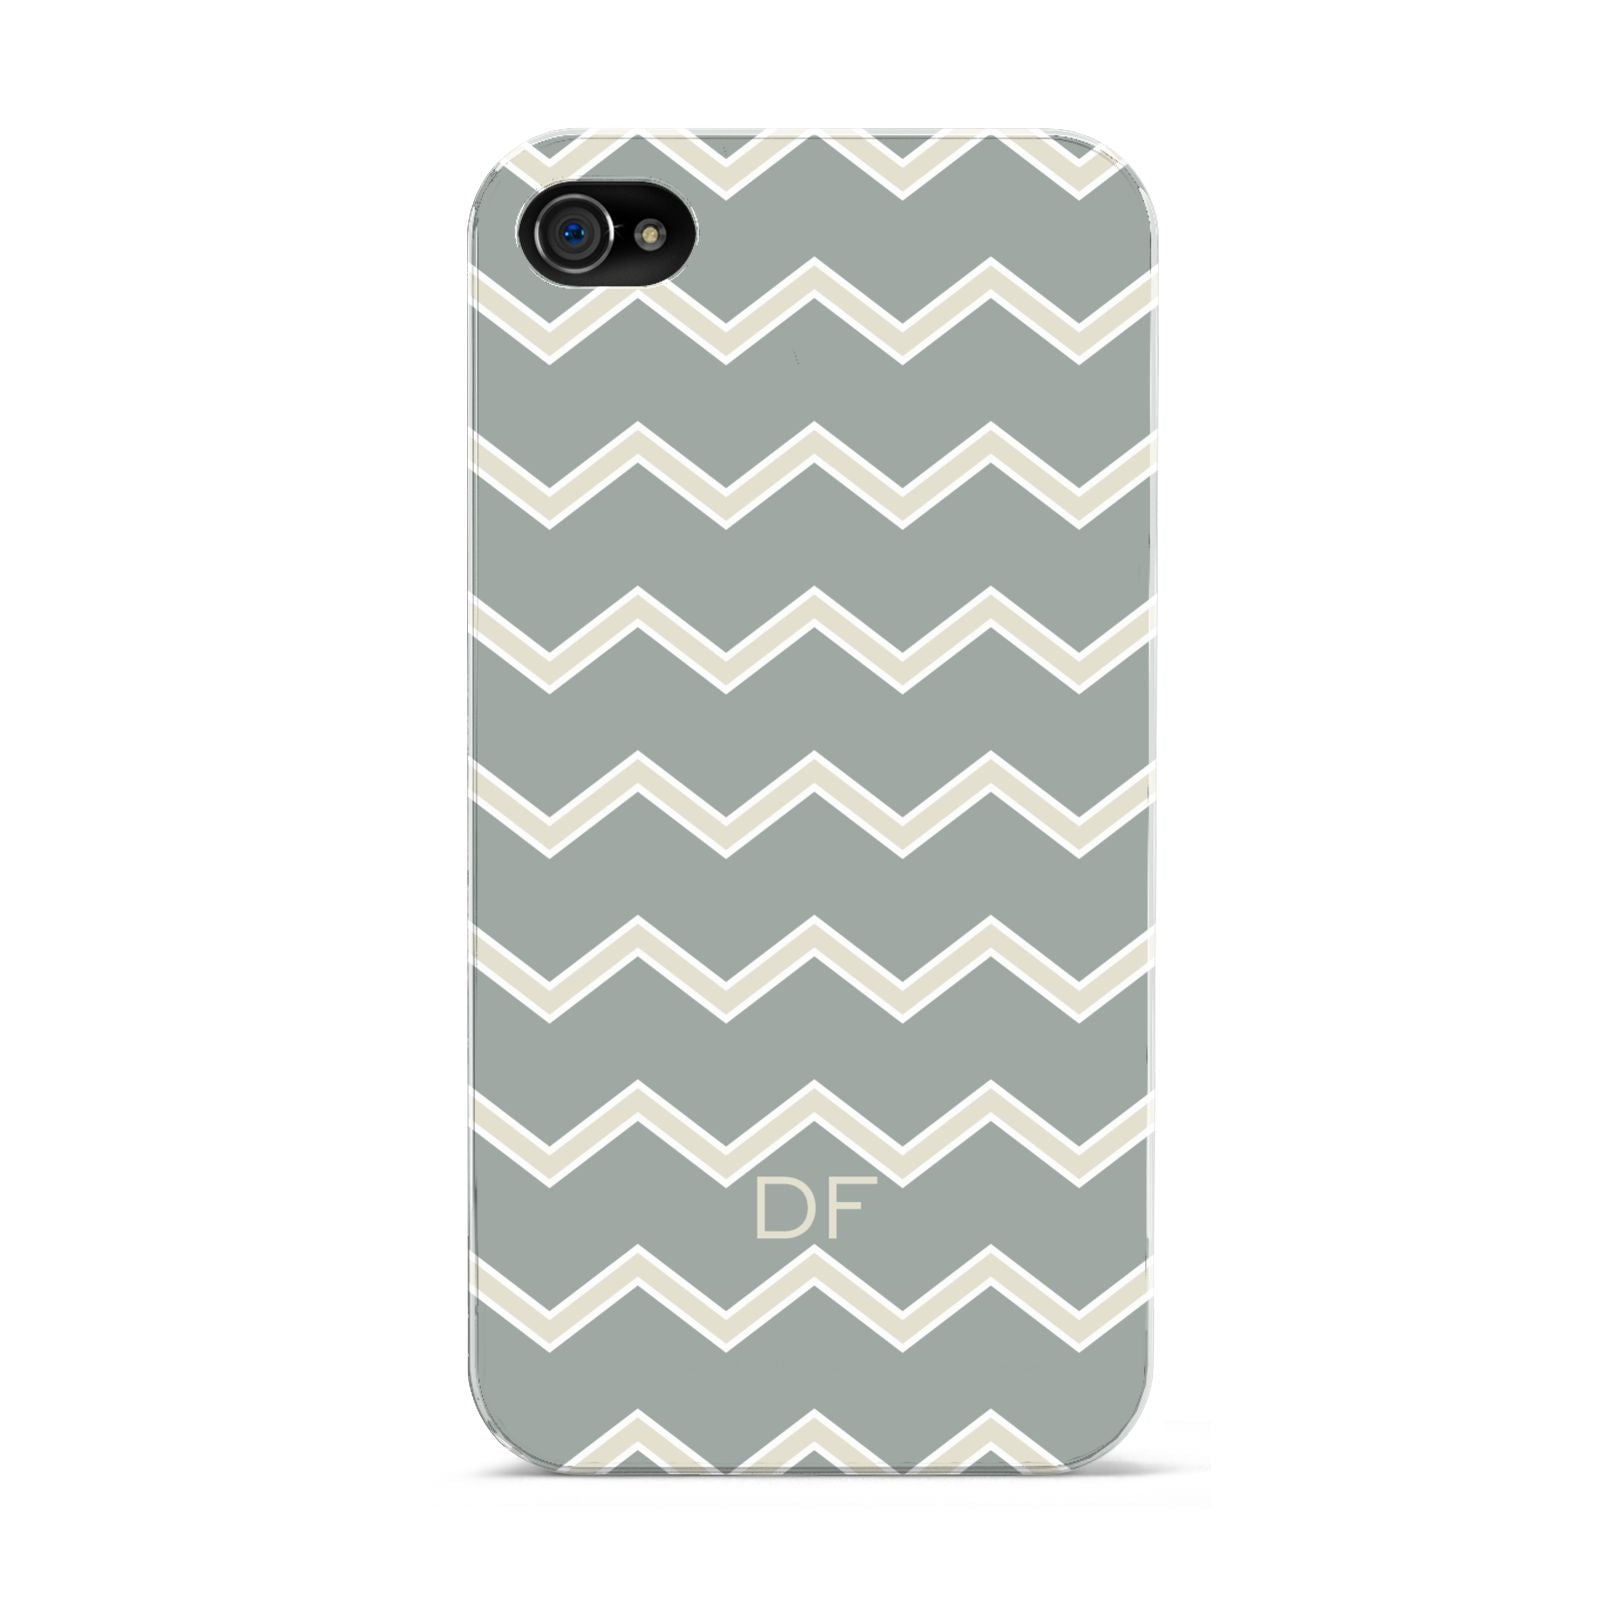 Personalised 2 Tone Chevron Apple iPhone 4s Case